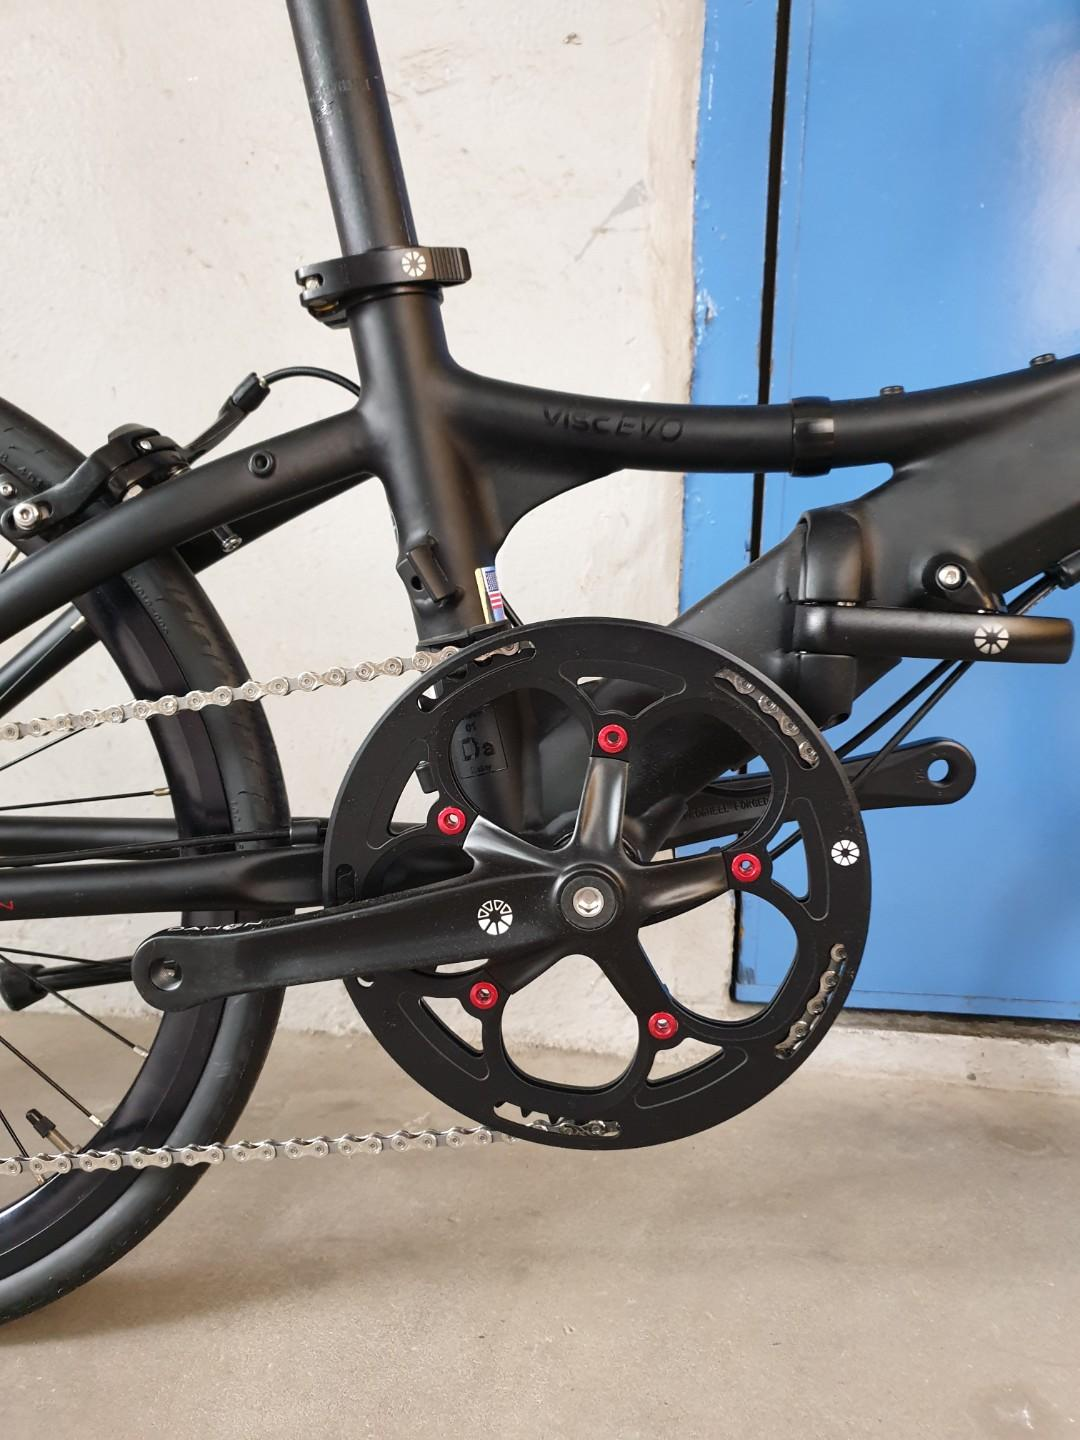 Dahon Visc Evo 10speed 20inch 451 Folding Bicycle